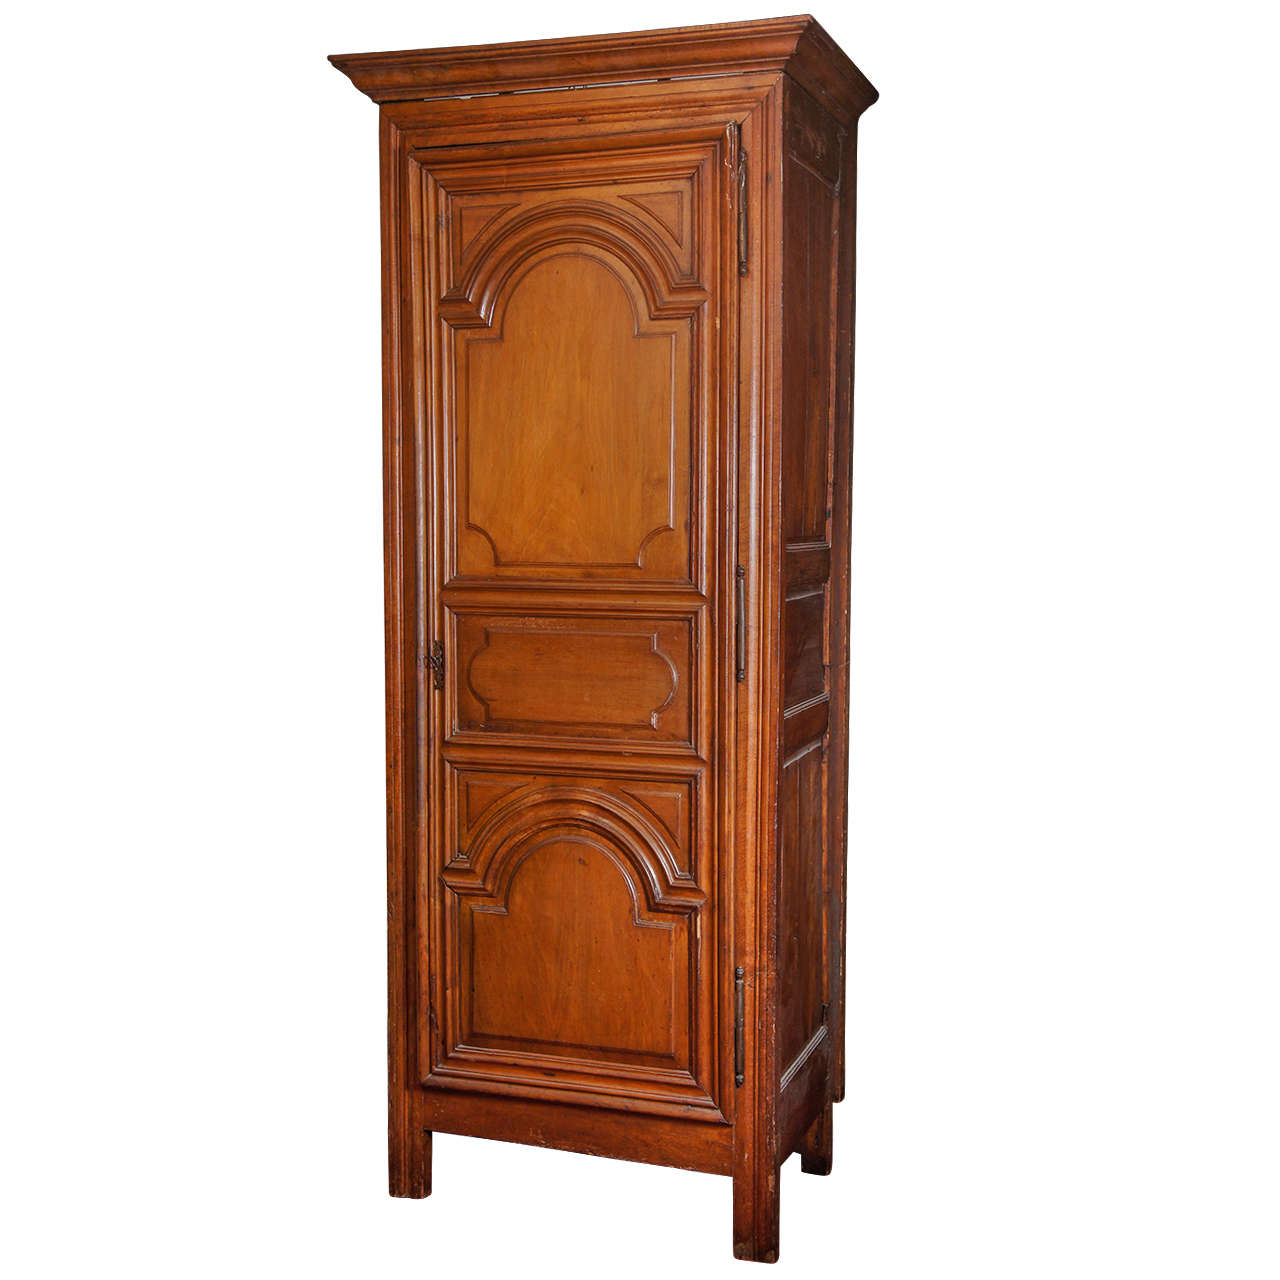 antique french bonnetiere armoire cabinet at 1stdibs. Black Bedroom Furniture Sets. Home Design Ideas